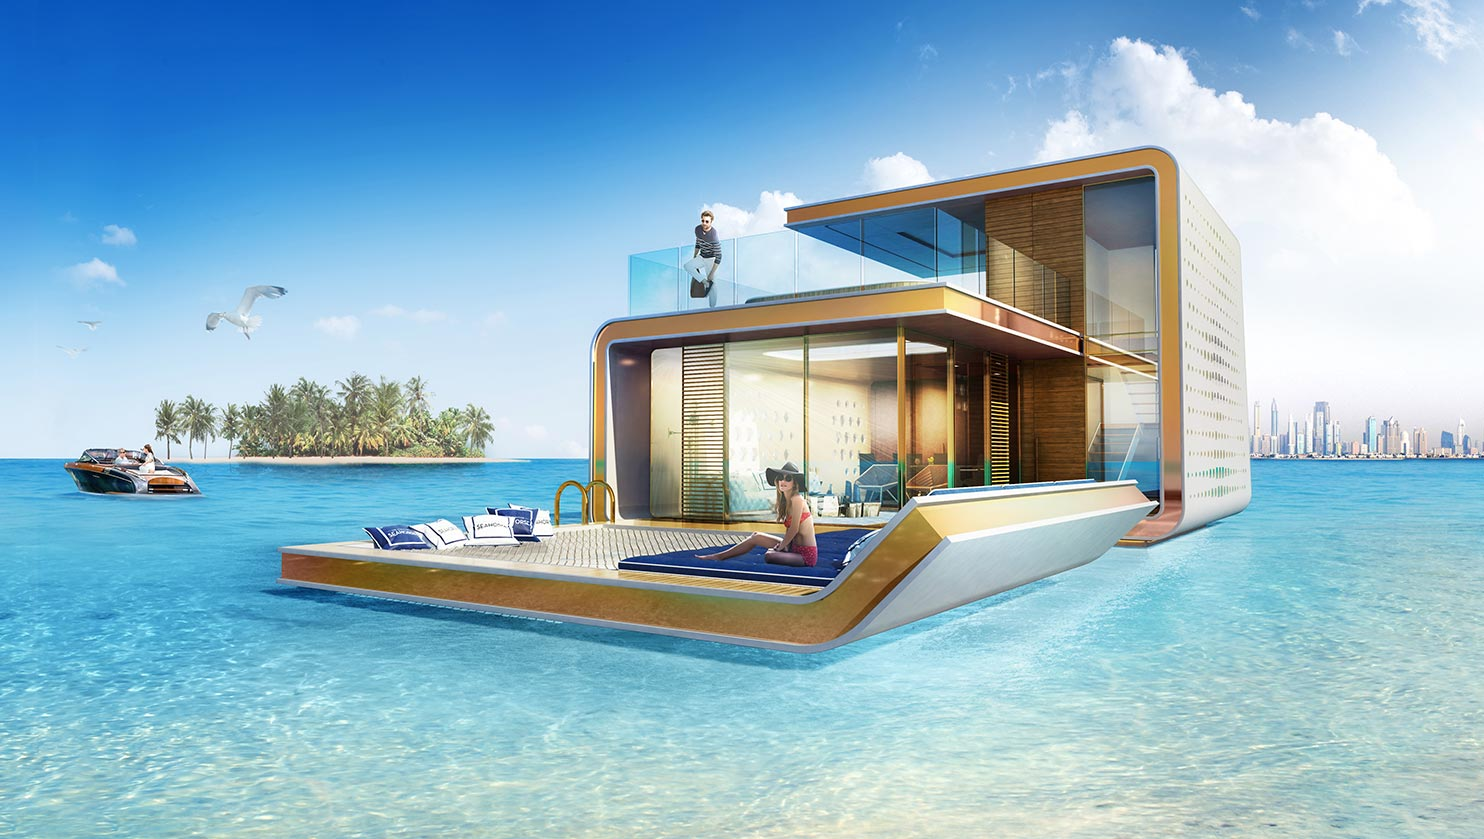 These Ultra Luxurious Floating Homes Look Incredible house2